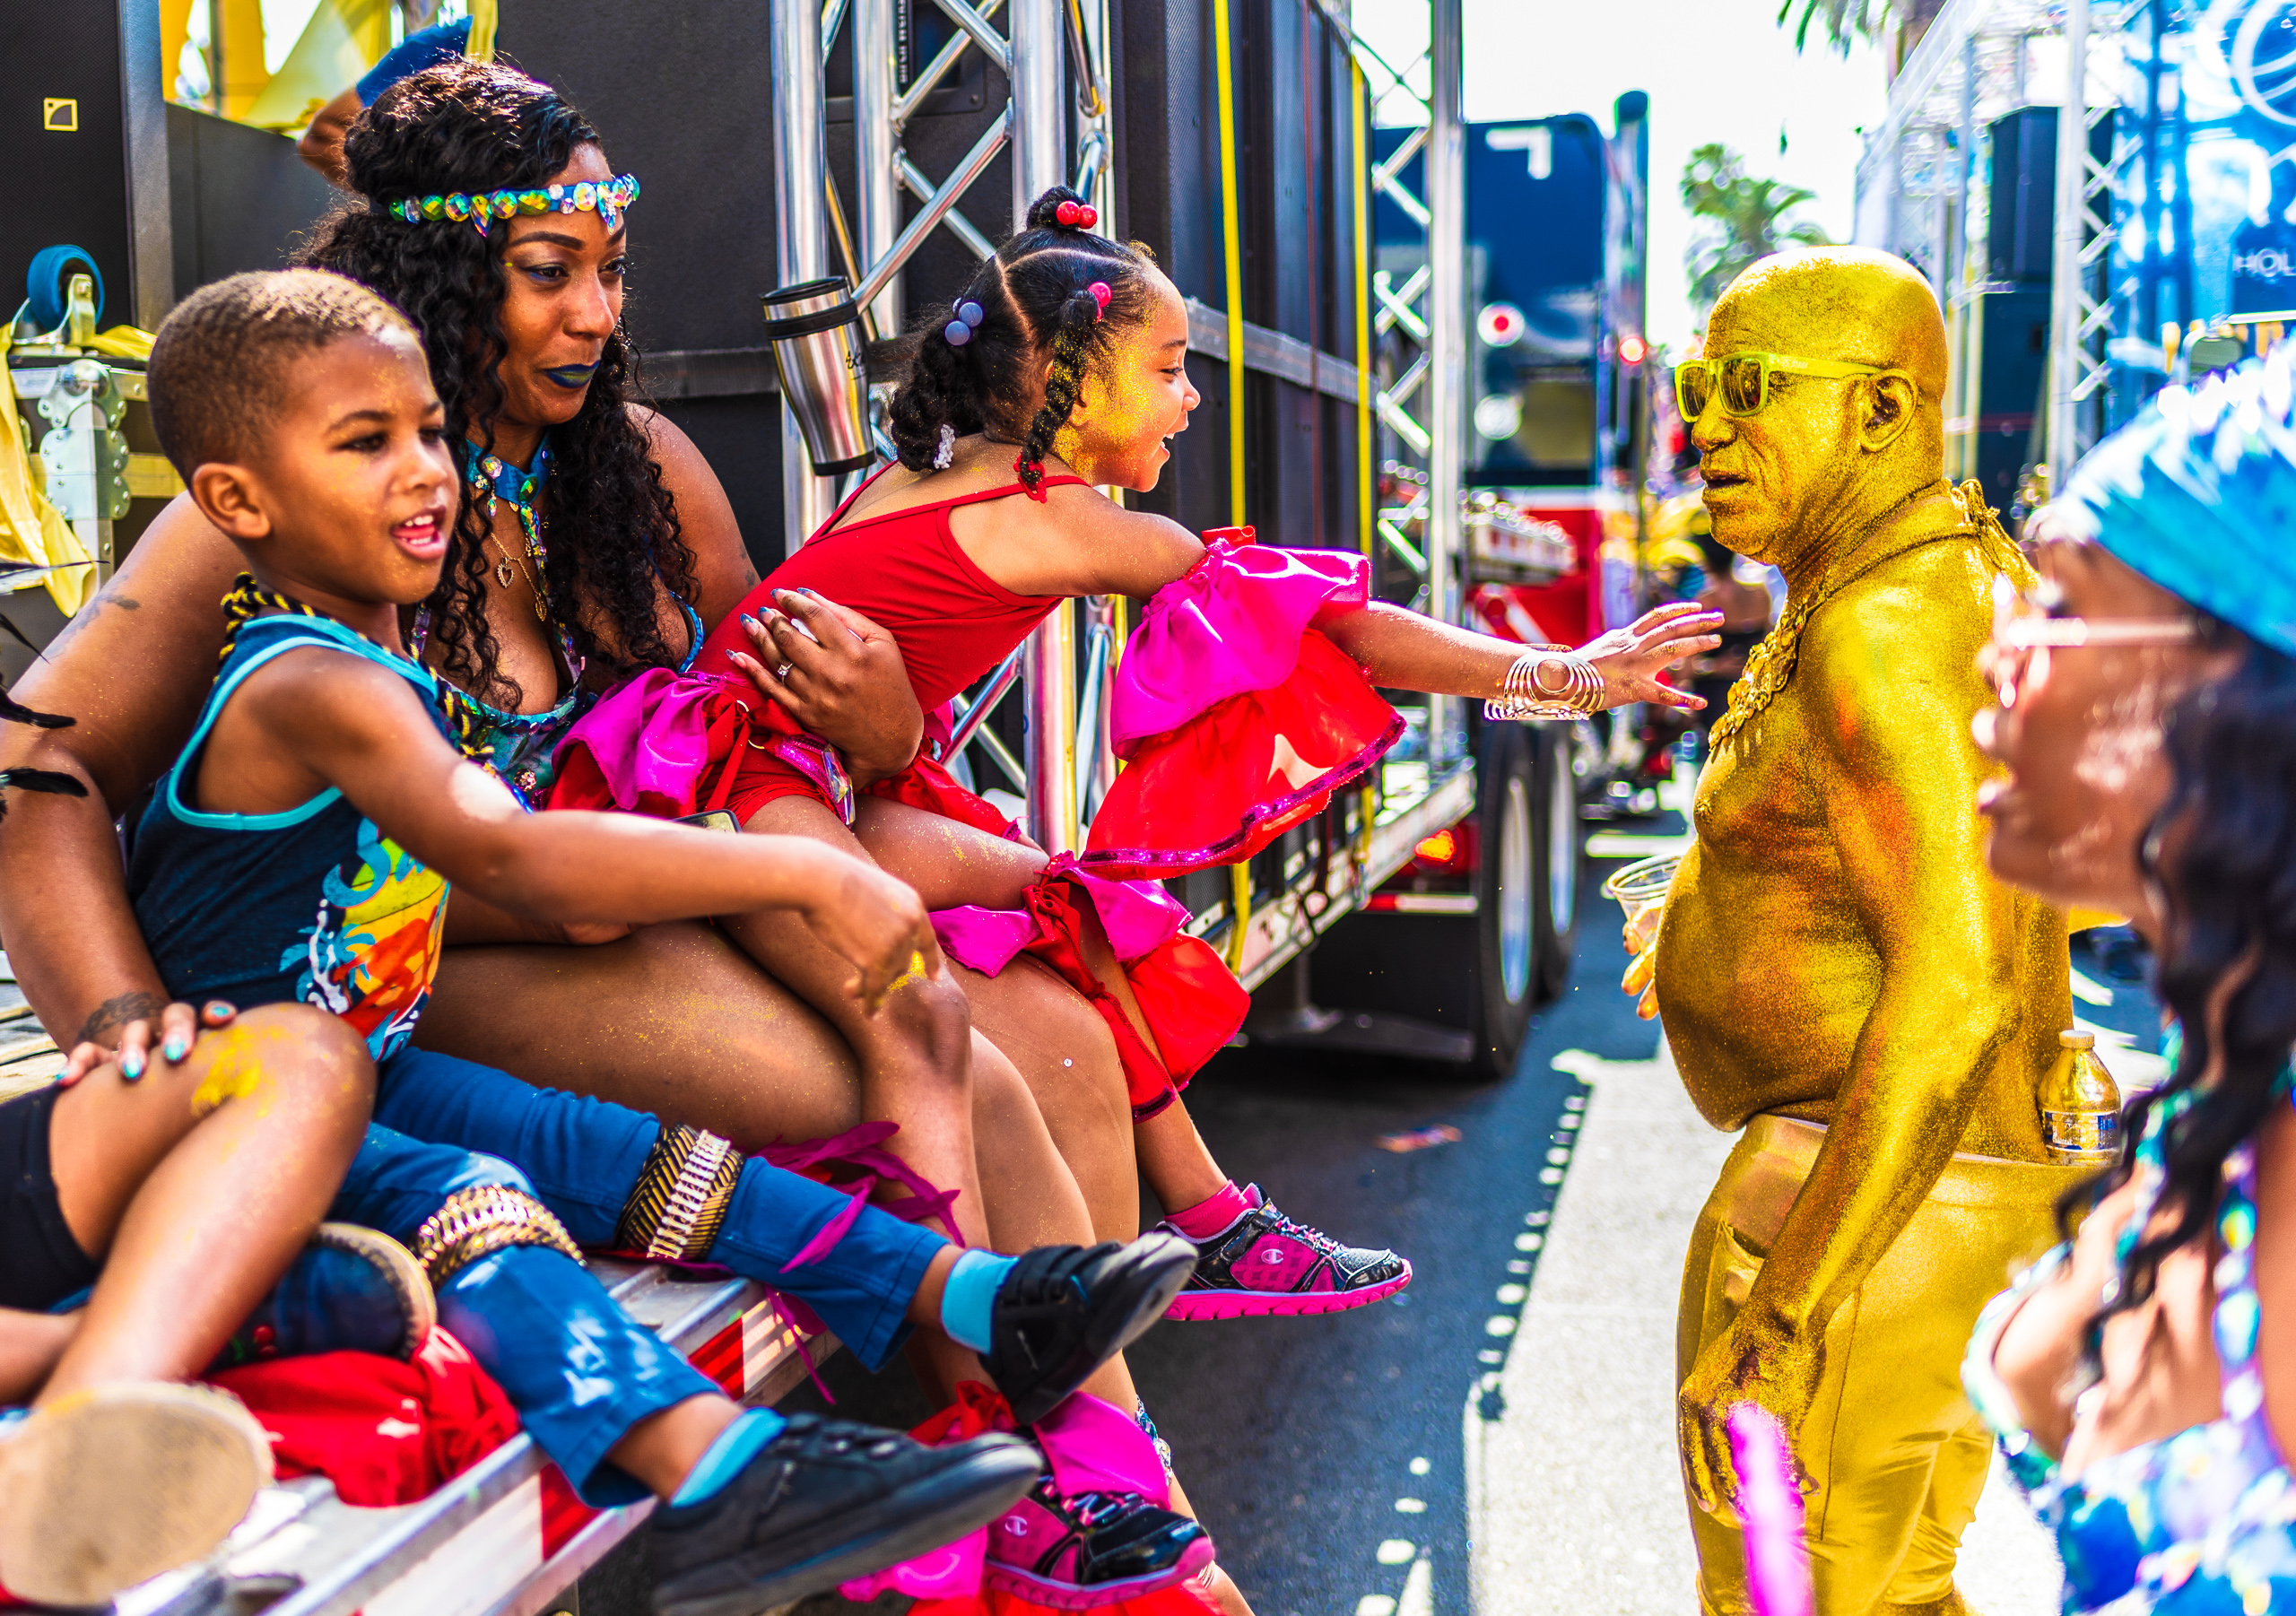 a young girl riding on a parade float reaches out to touch a man covered in shimmering gold color